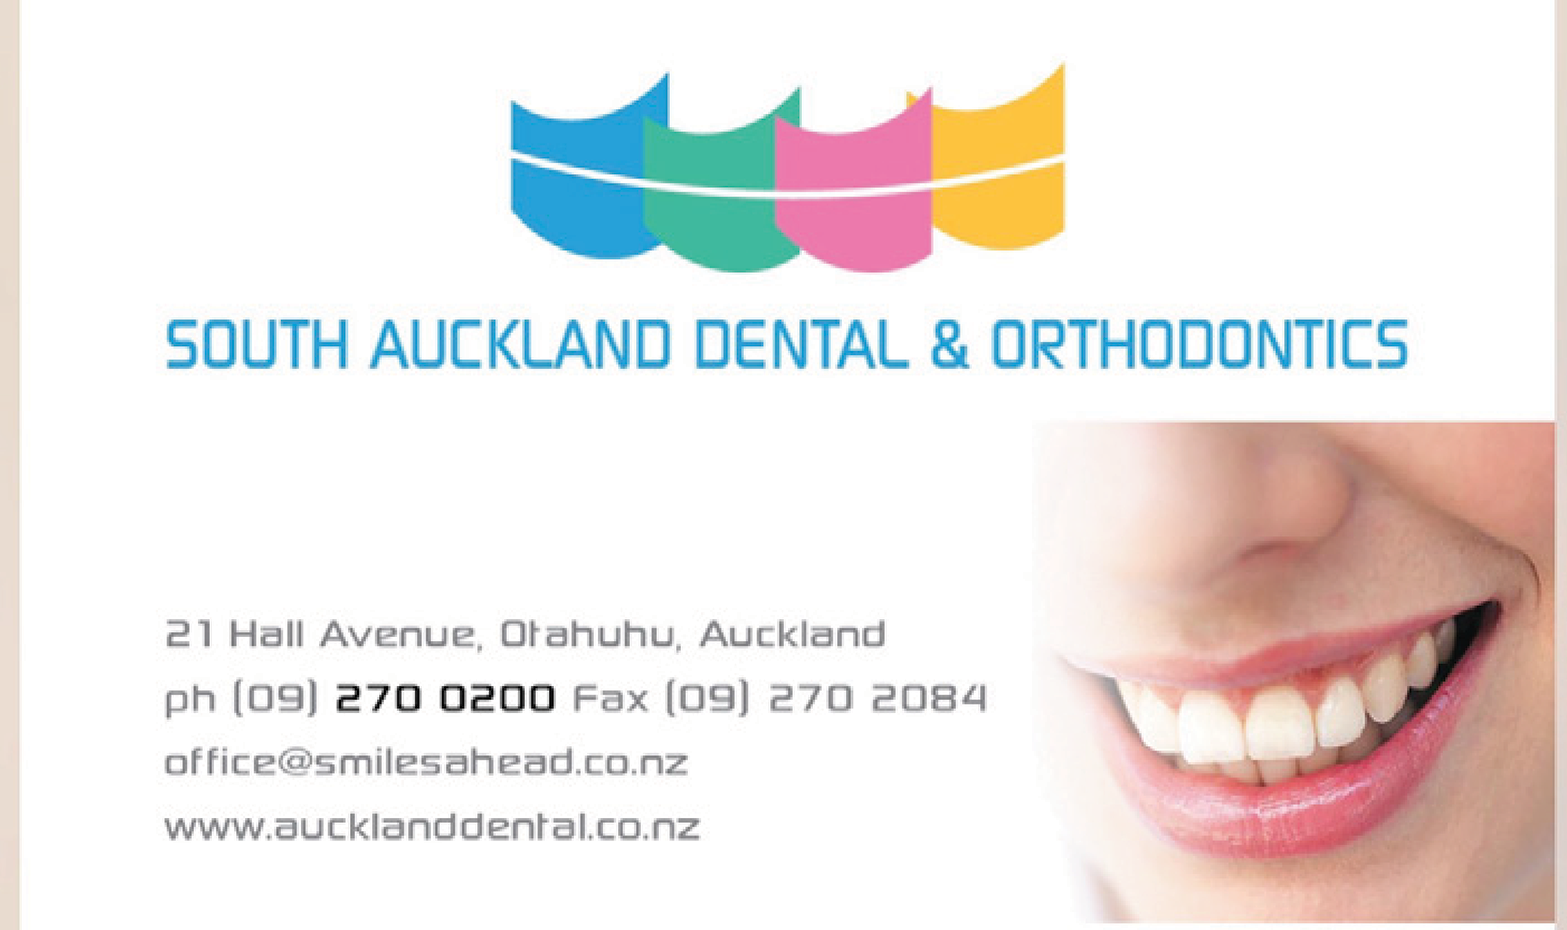 South Auckland Dental and Orthodontics